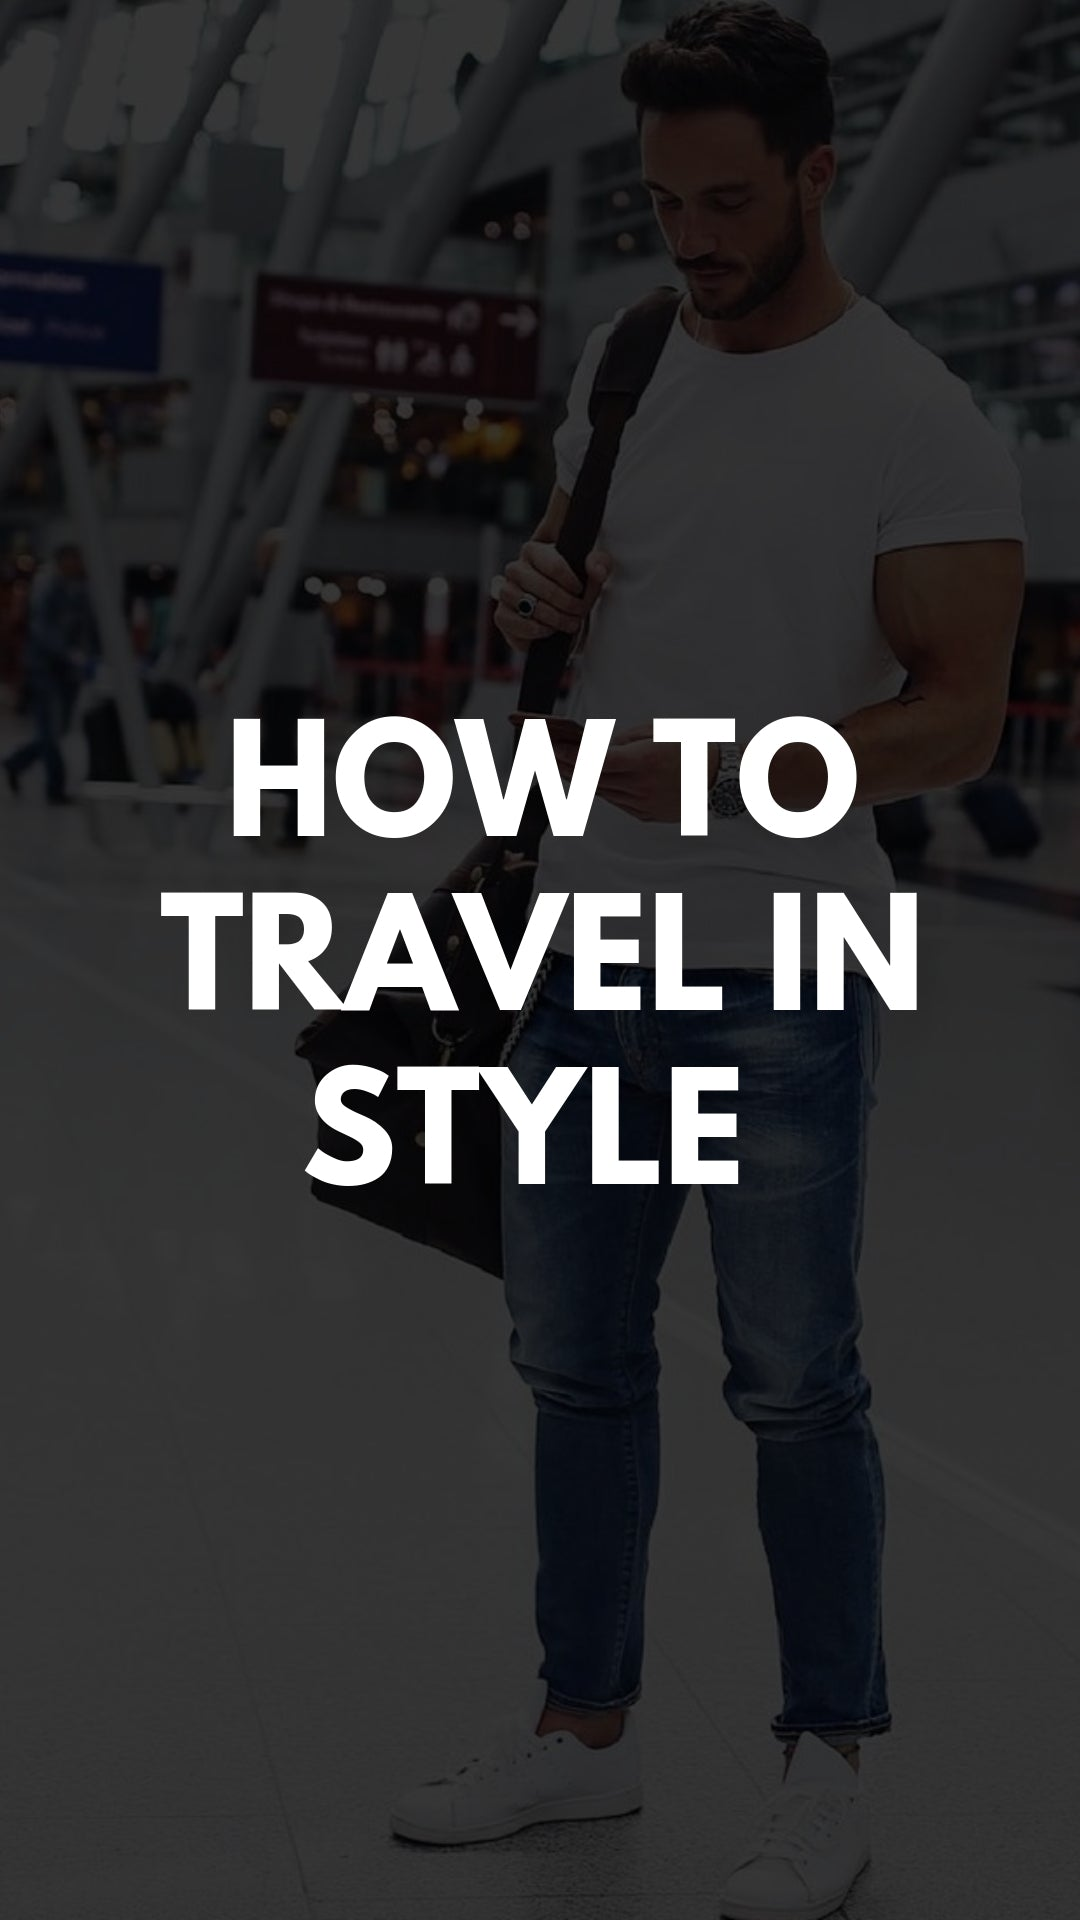 A Simple Guide for the Gentleman Who Wants to Travel in Style #travel #airportlooks